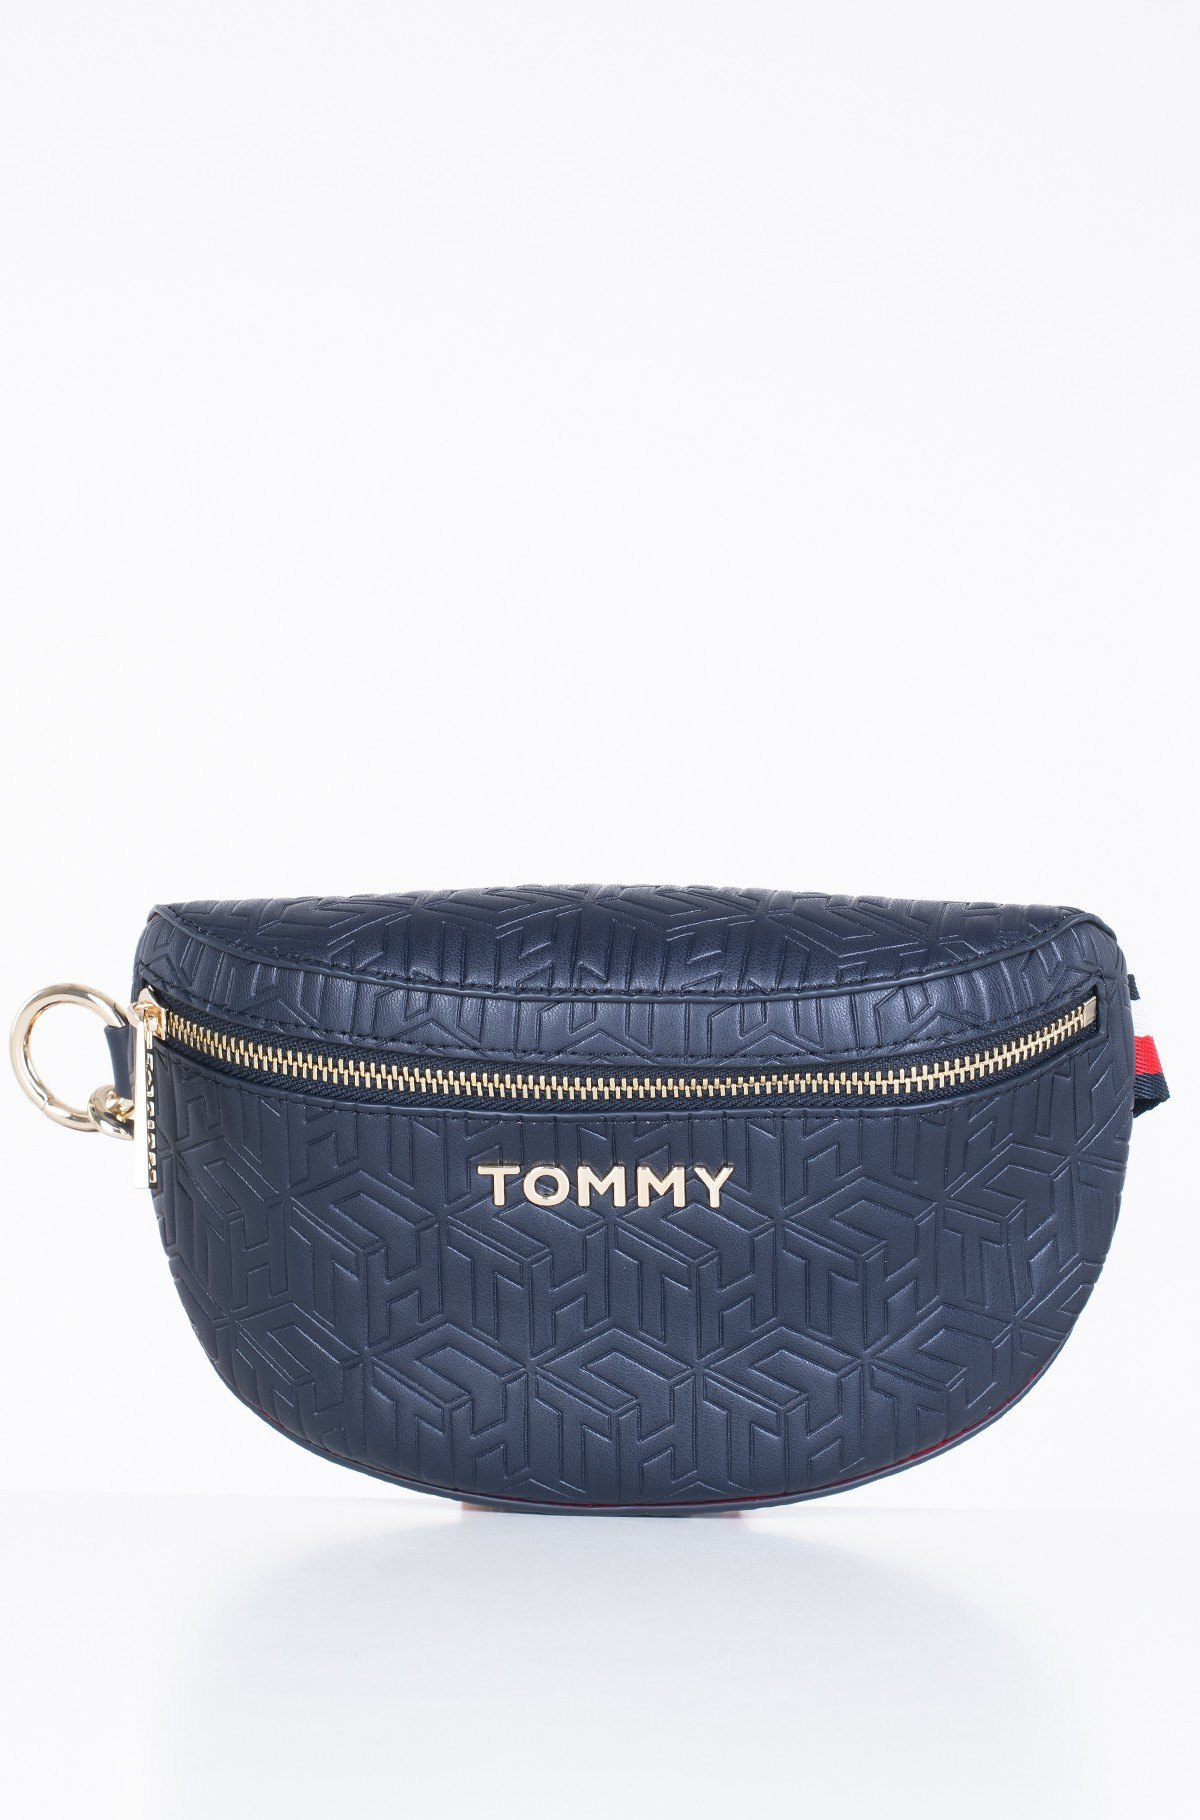 Diržas ICONIC TOMMY BUMBAG-full-1